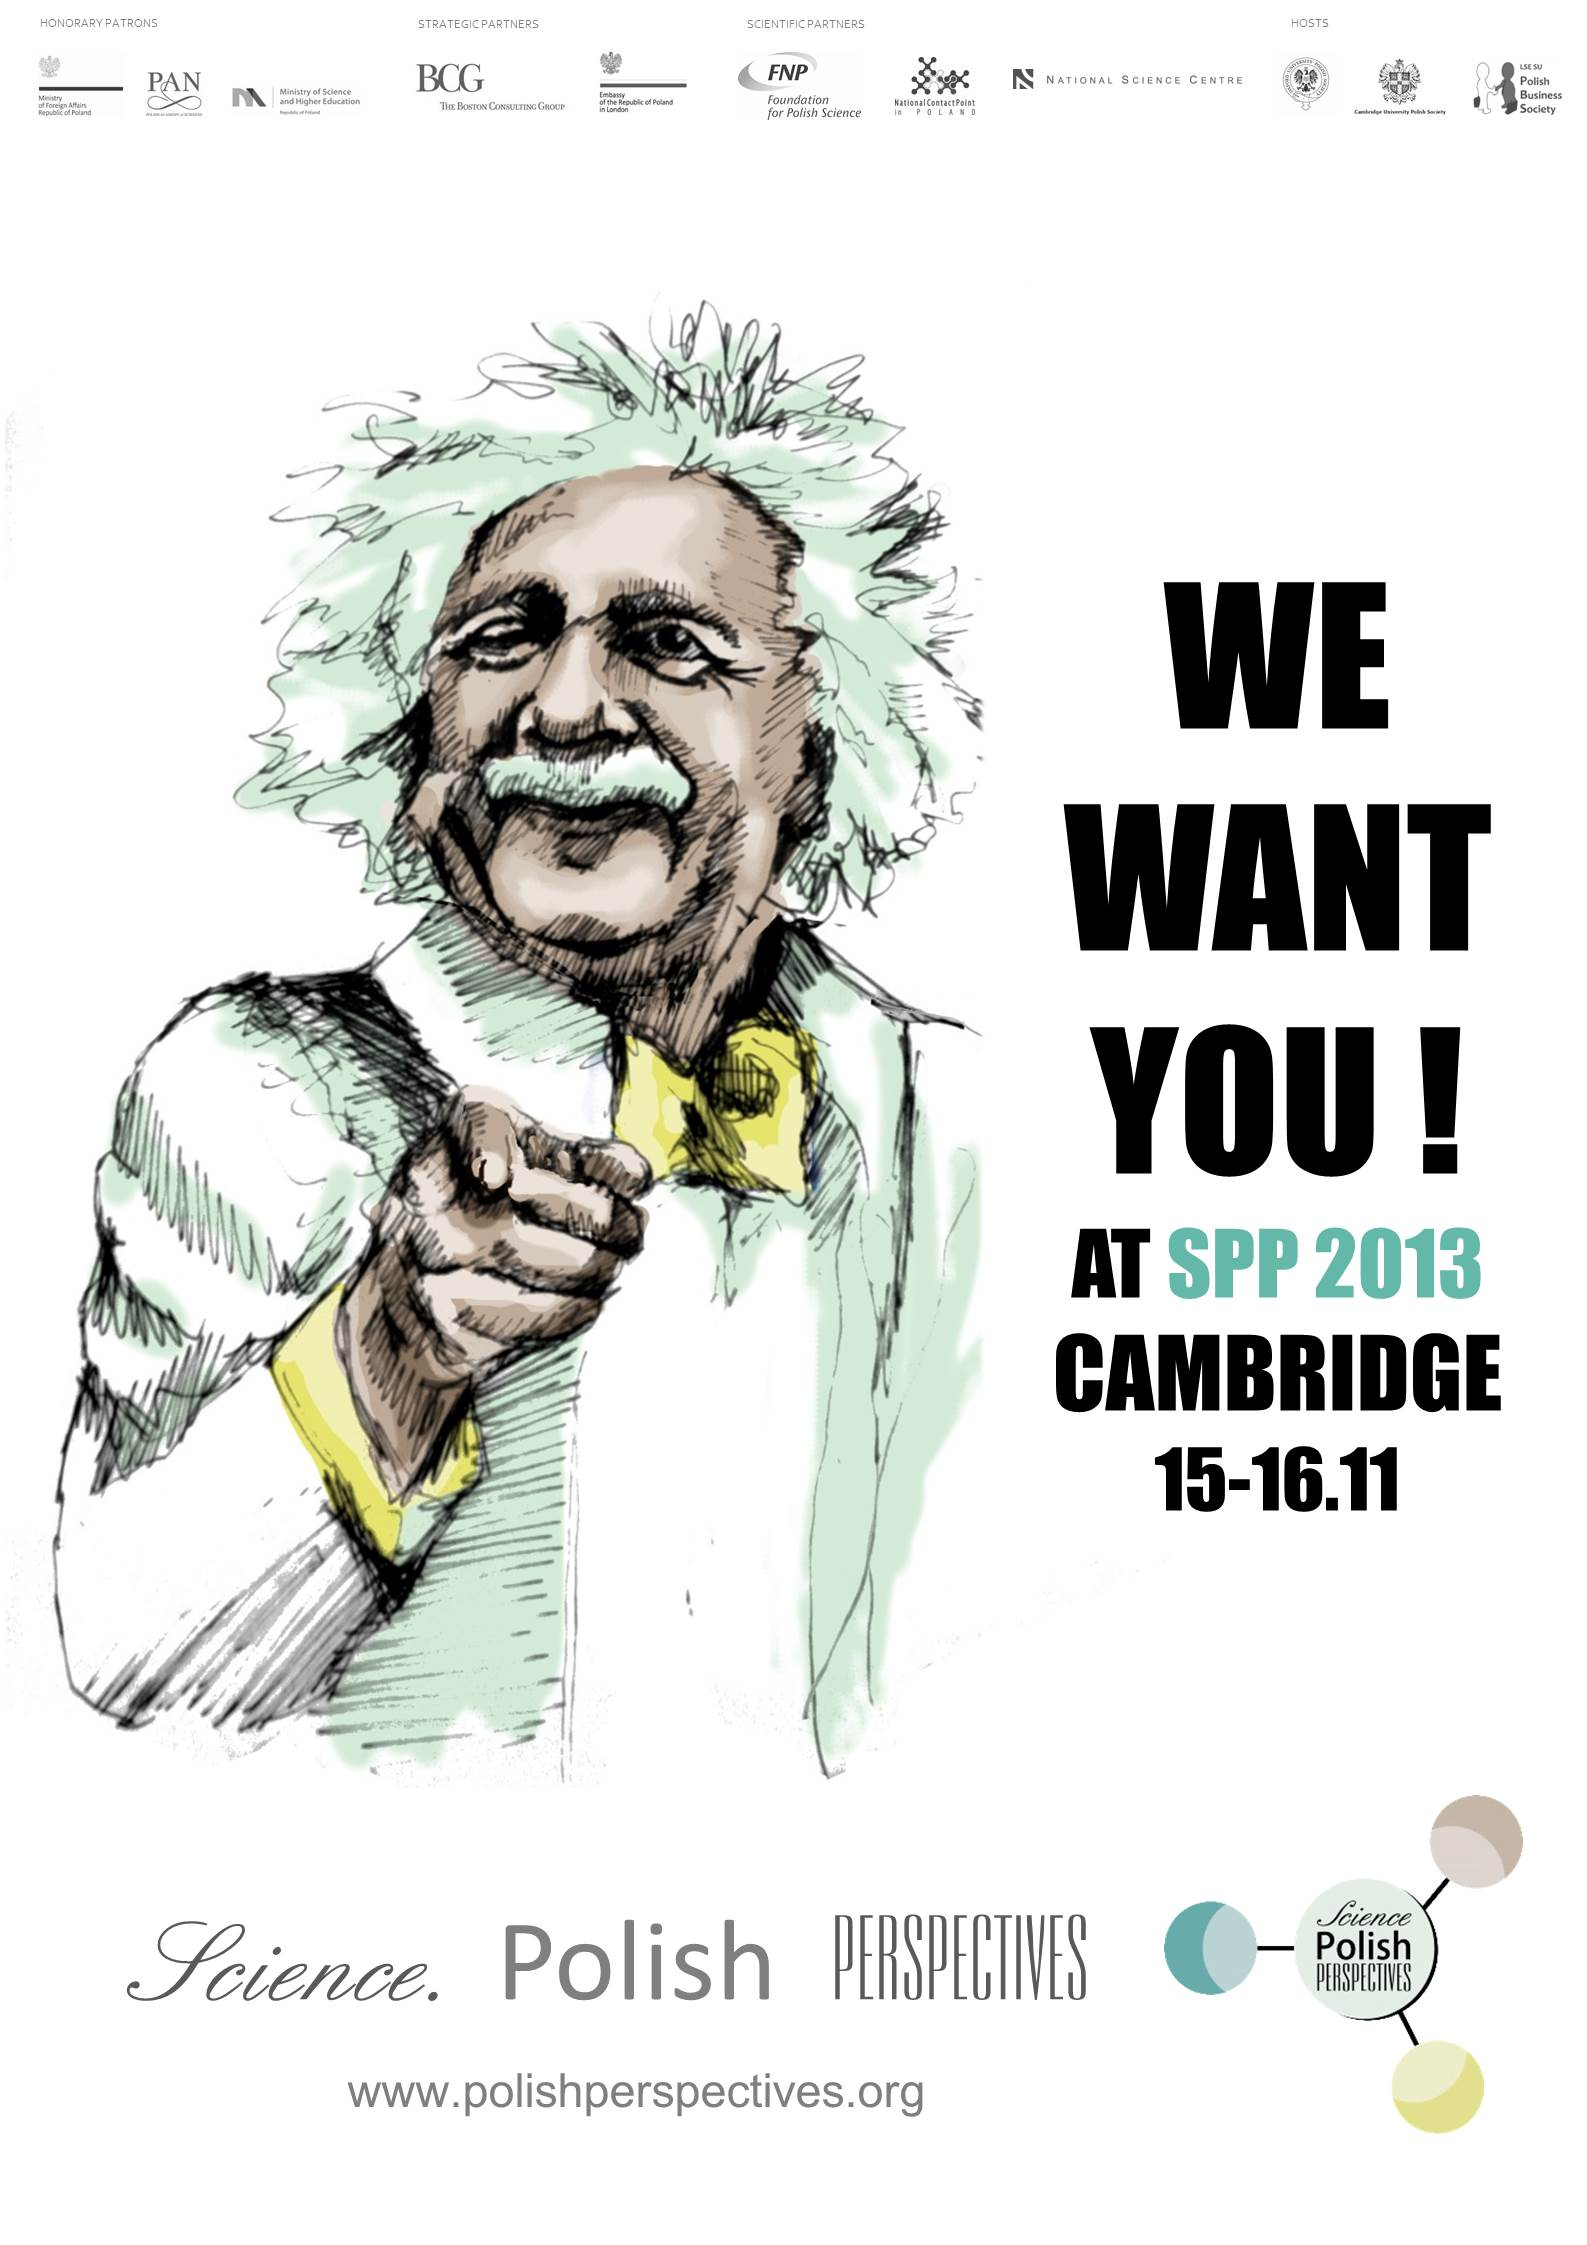 """15-16.11.13 – """"Polish Perspectives"""" science conference in Cambridge"""